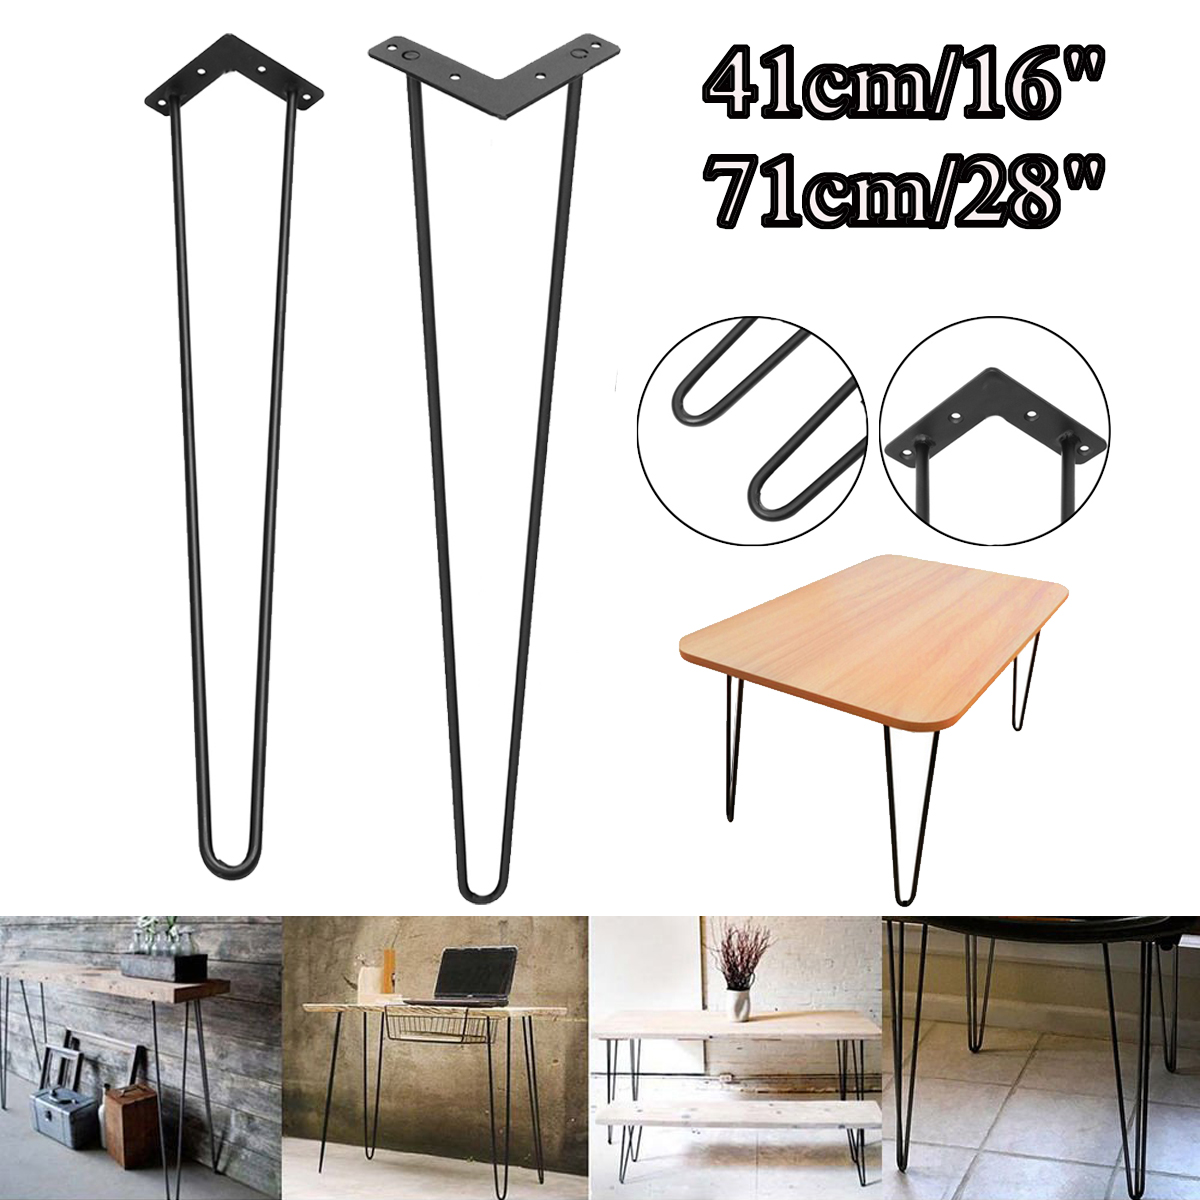 4x Hairpin Table Legs Set 3 Rod Dining Table Desk Steel Legs Size 21-71cm